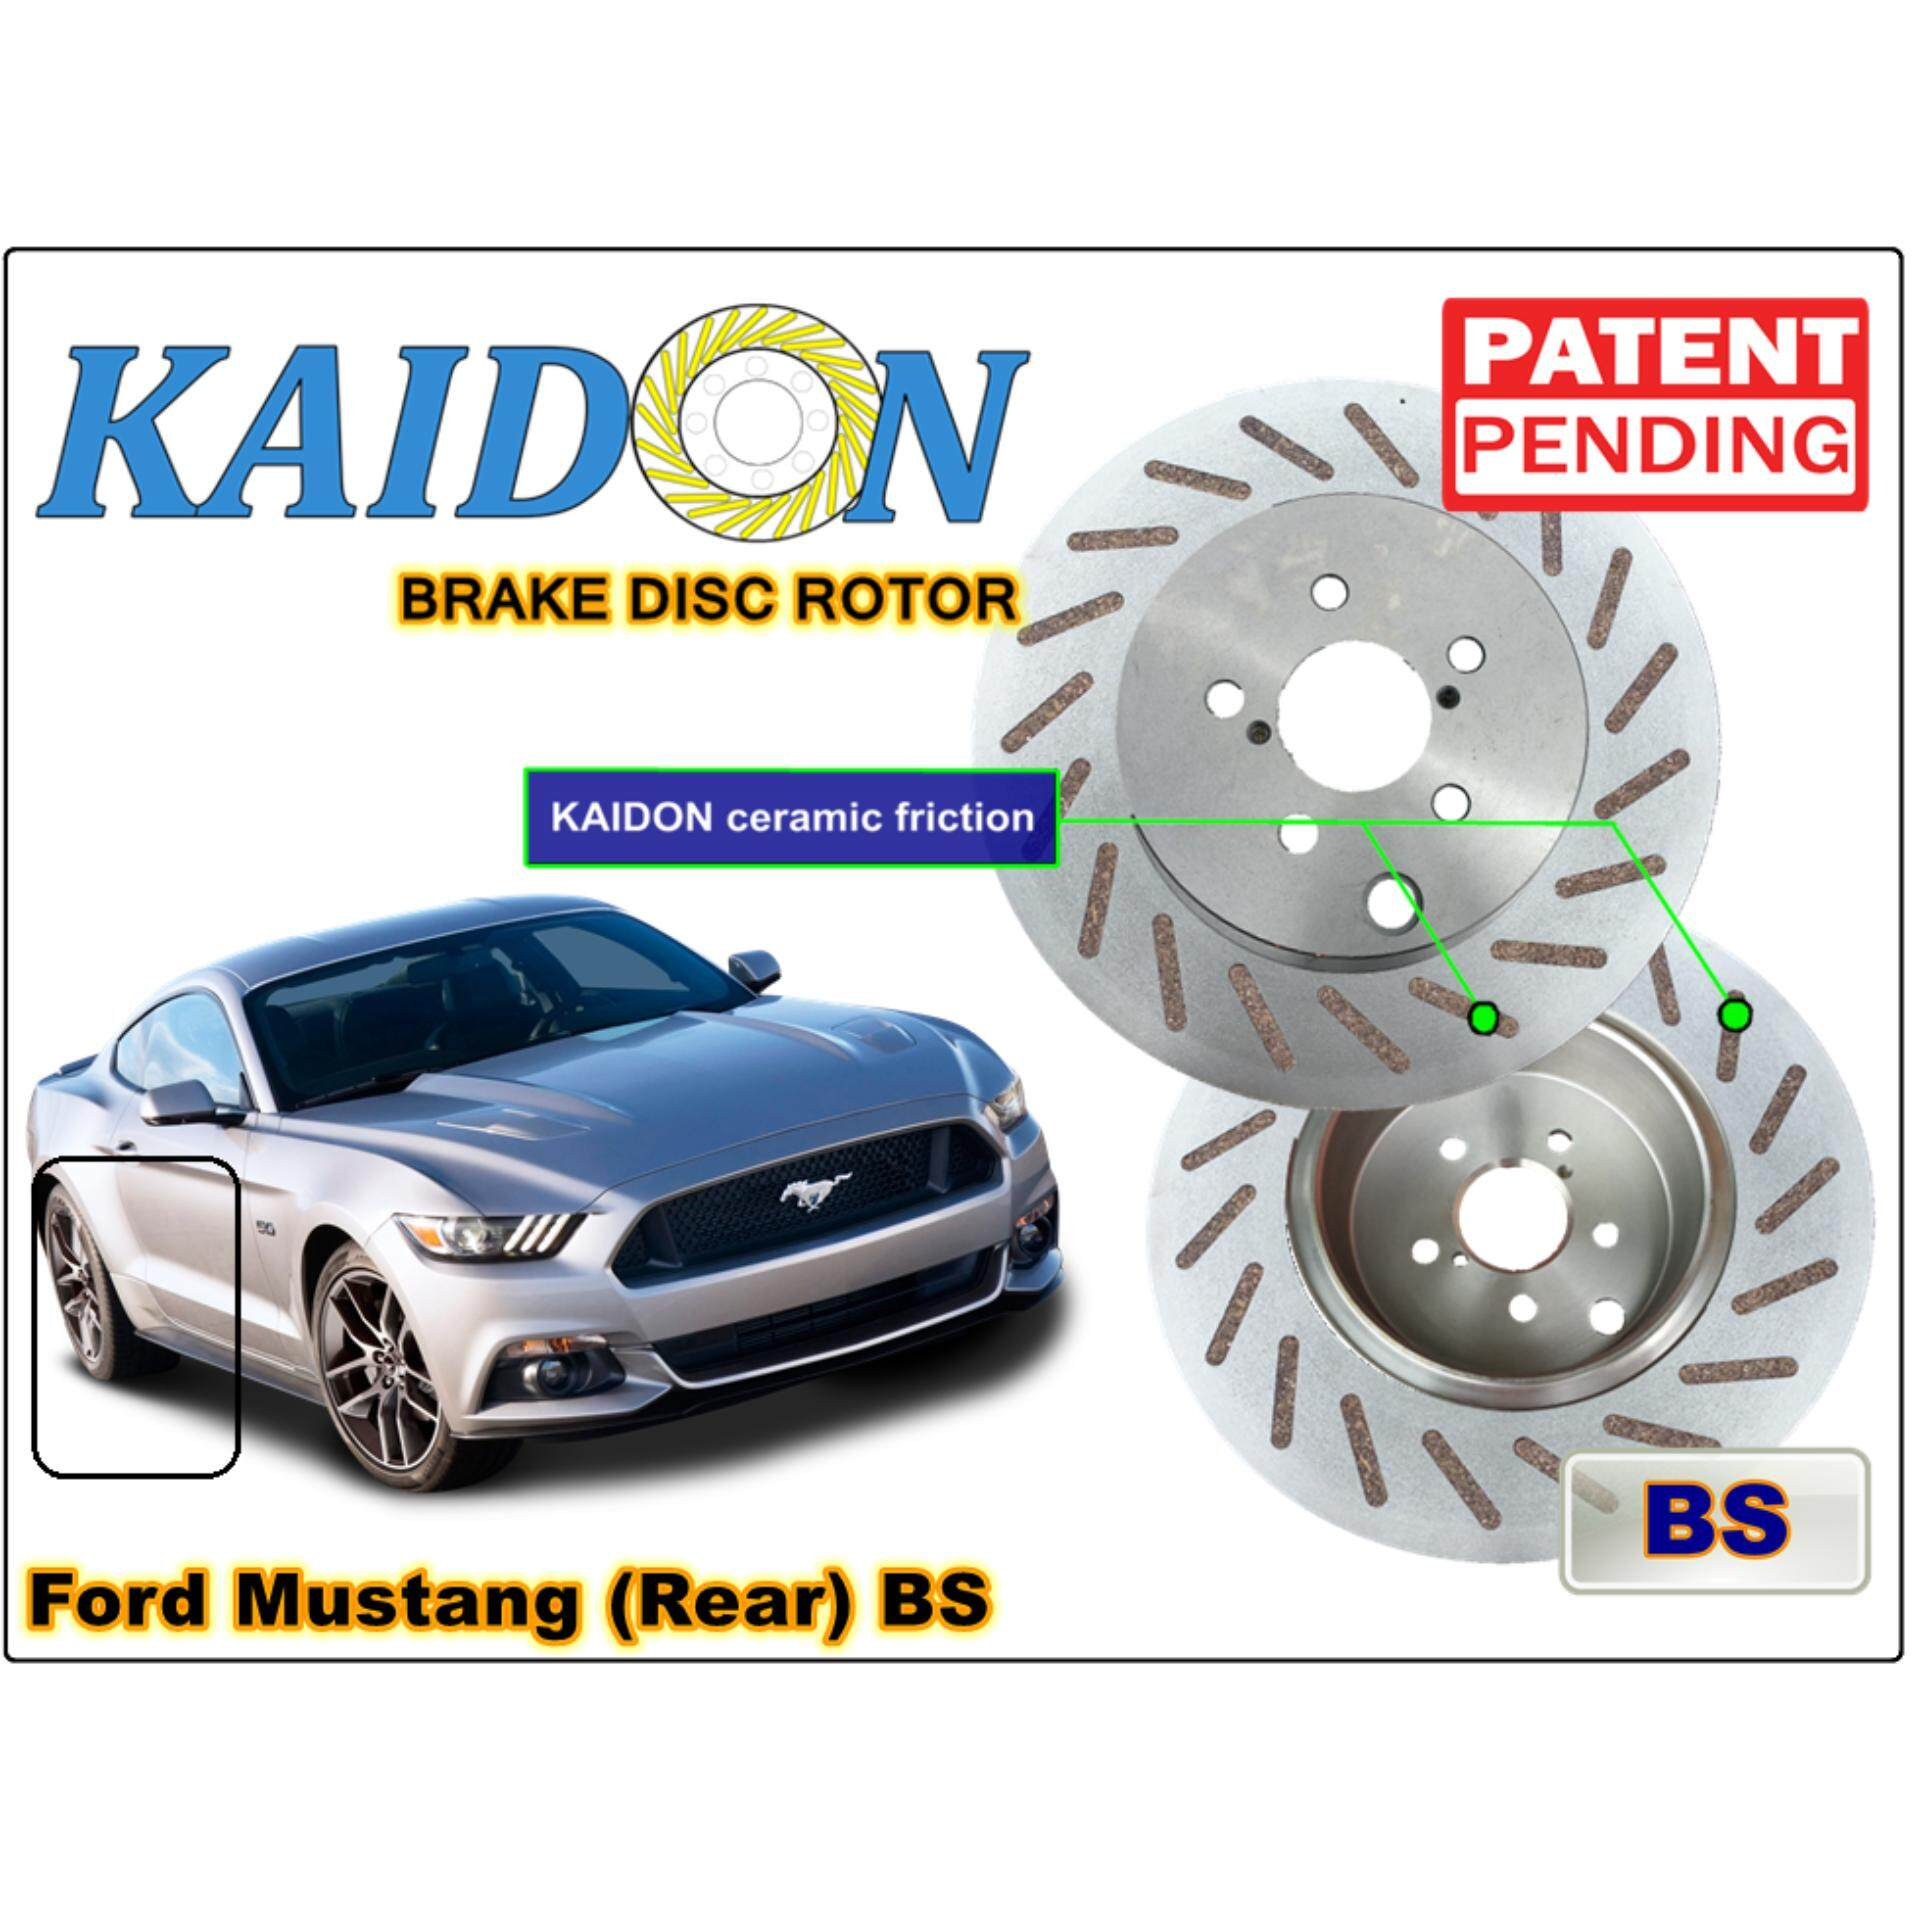 Ford mustang gt brake disc rotor kaidon rear type bs spec